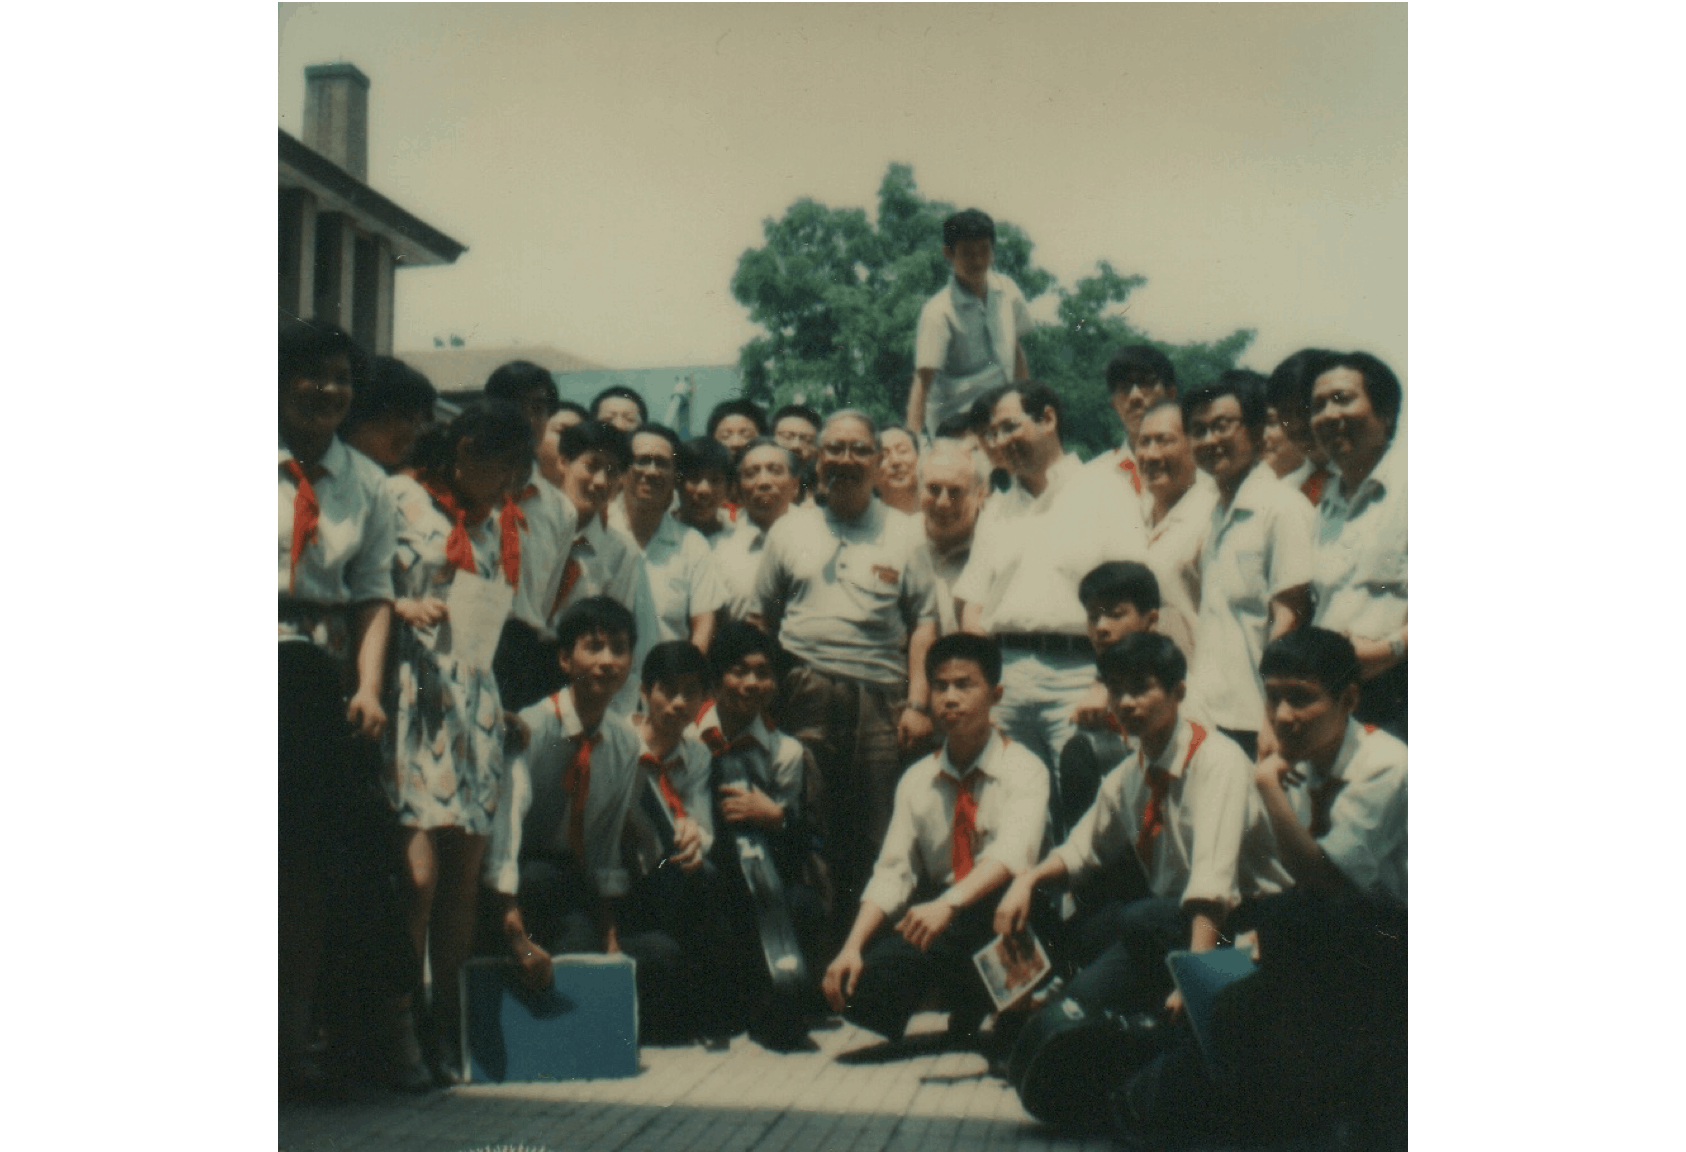 Isaac Stern, David Golub and students at the Central Conservatory of Music in Beijing